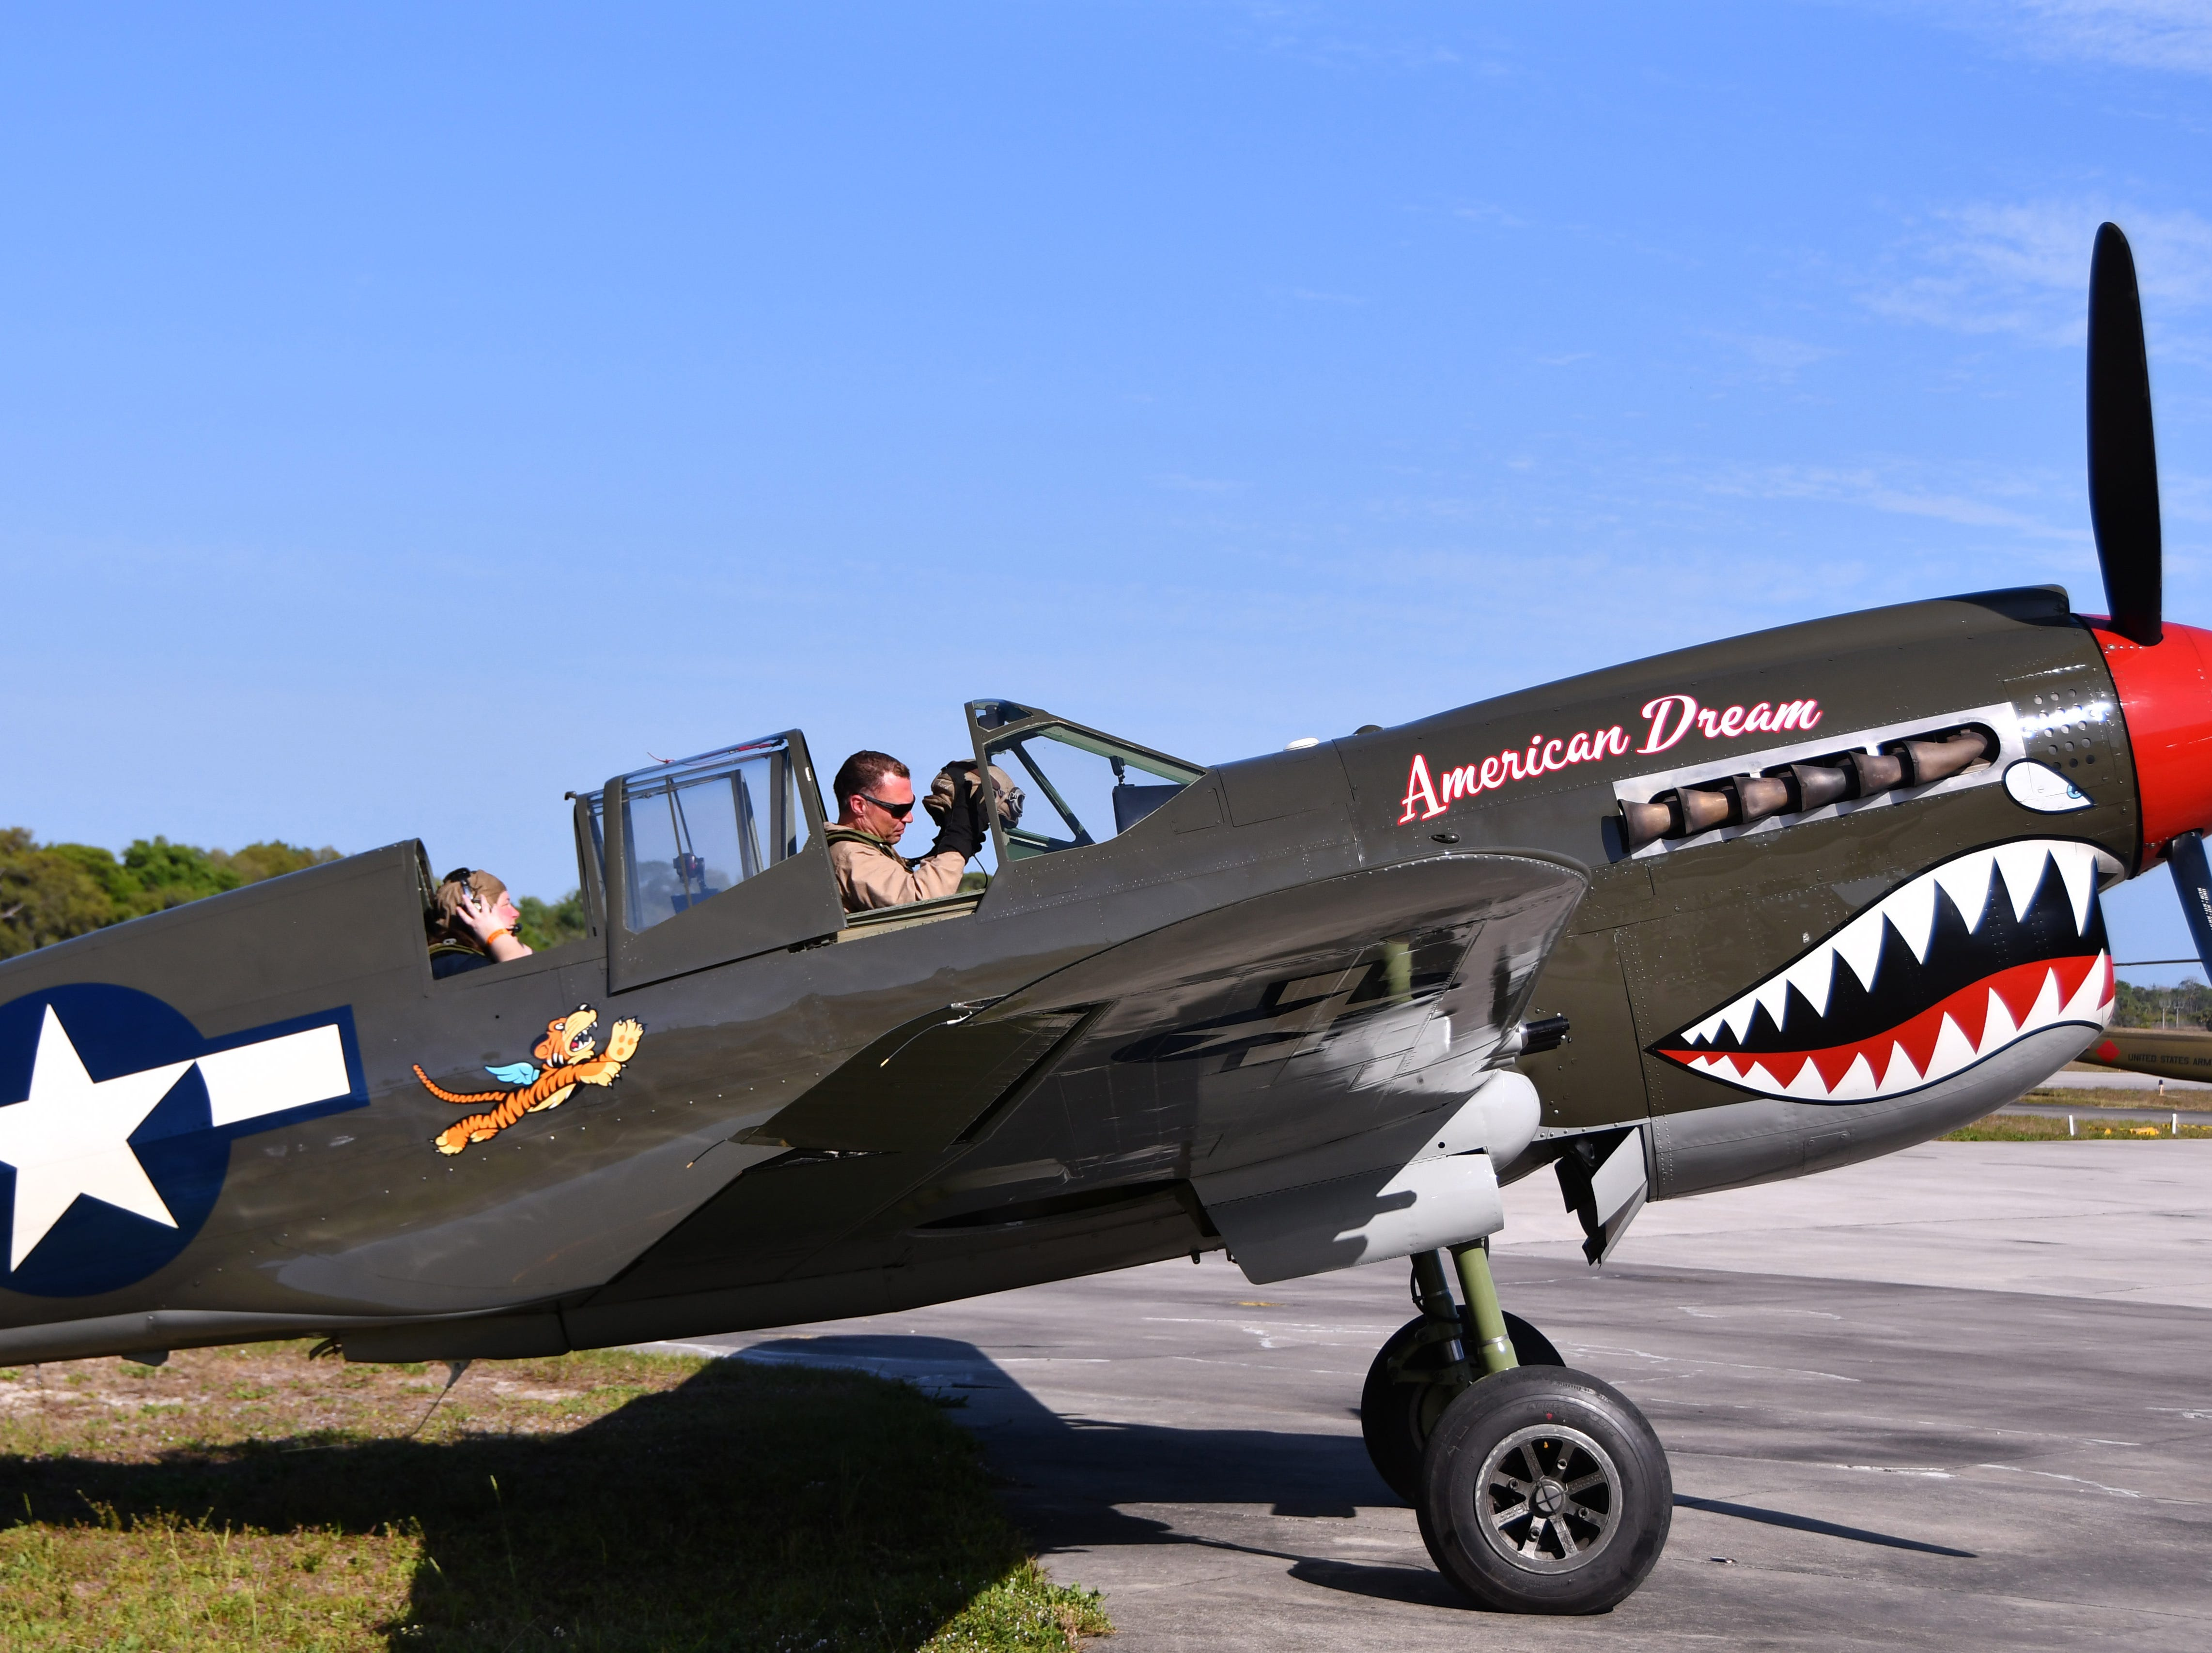 The P-40 American Dream, one of only five to exist, prepares for take off. The 2019 Space Coast Warbird Air Show held their media day Thursday, promoting the Air Show that runs Friday, Saturday and Sunday at Space Coast Regional Airport in Titusville, with a Friday afternoon and evening show with fireworks, and shows Saturday and Sunday afternoon.